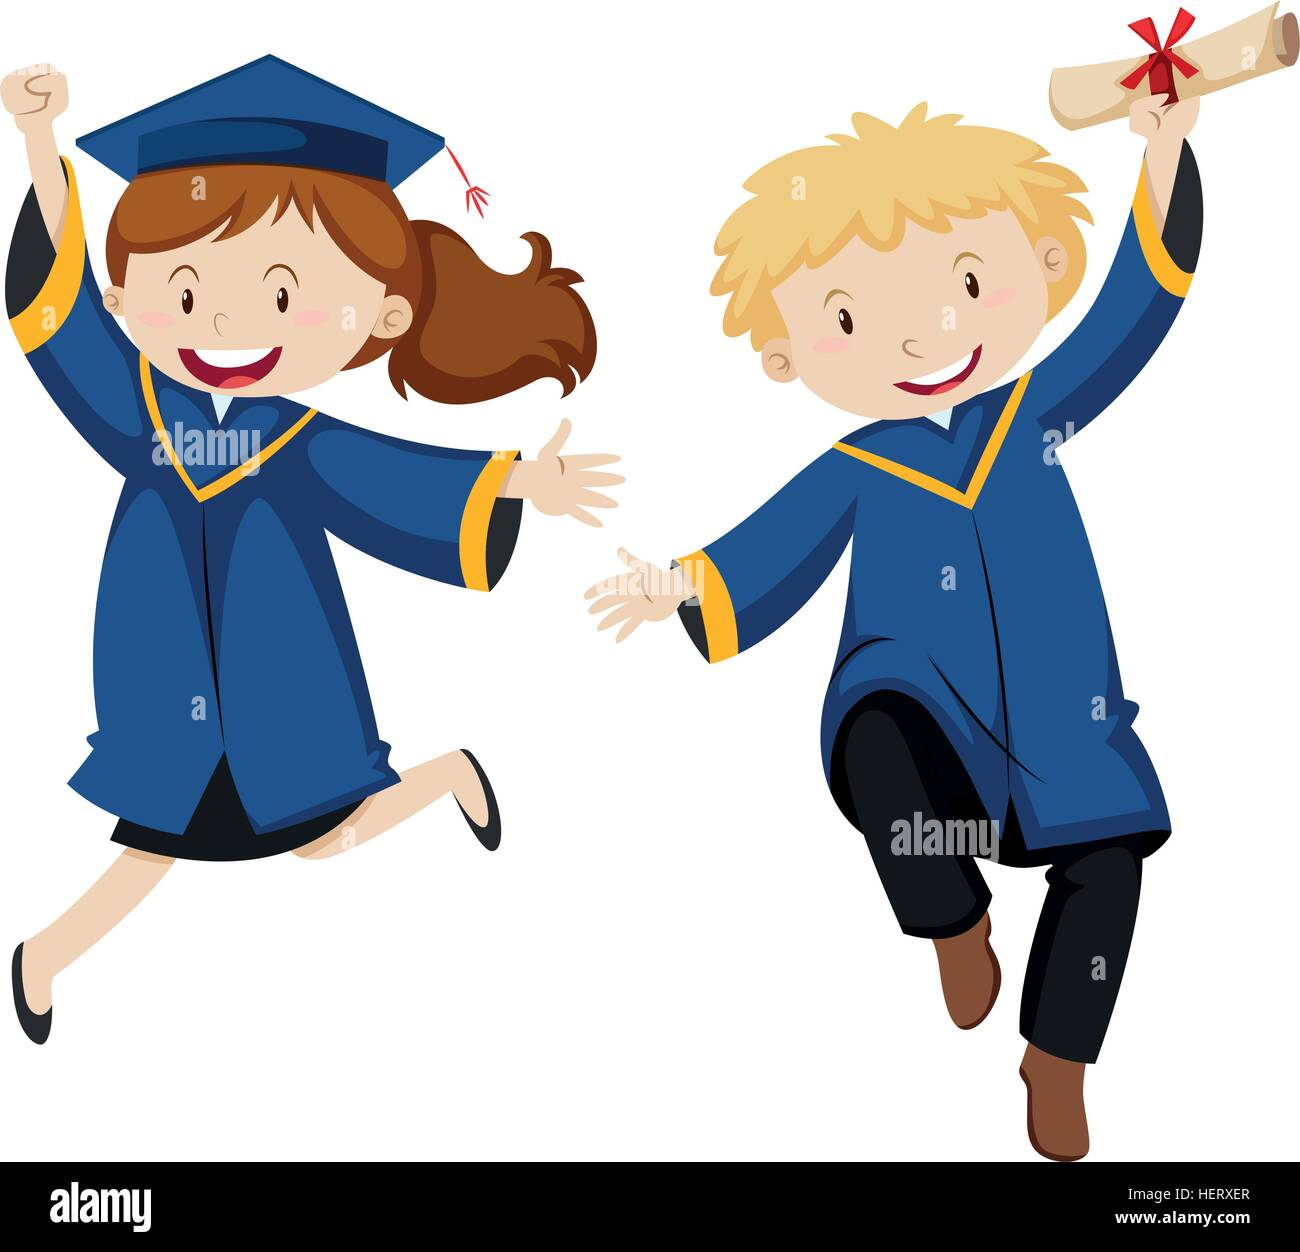 Boy and girl in graduation gown illustration  sc 1 st  Alamy & Boy and girl in graduation gown illustration Stock Vector Art ...